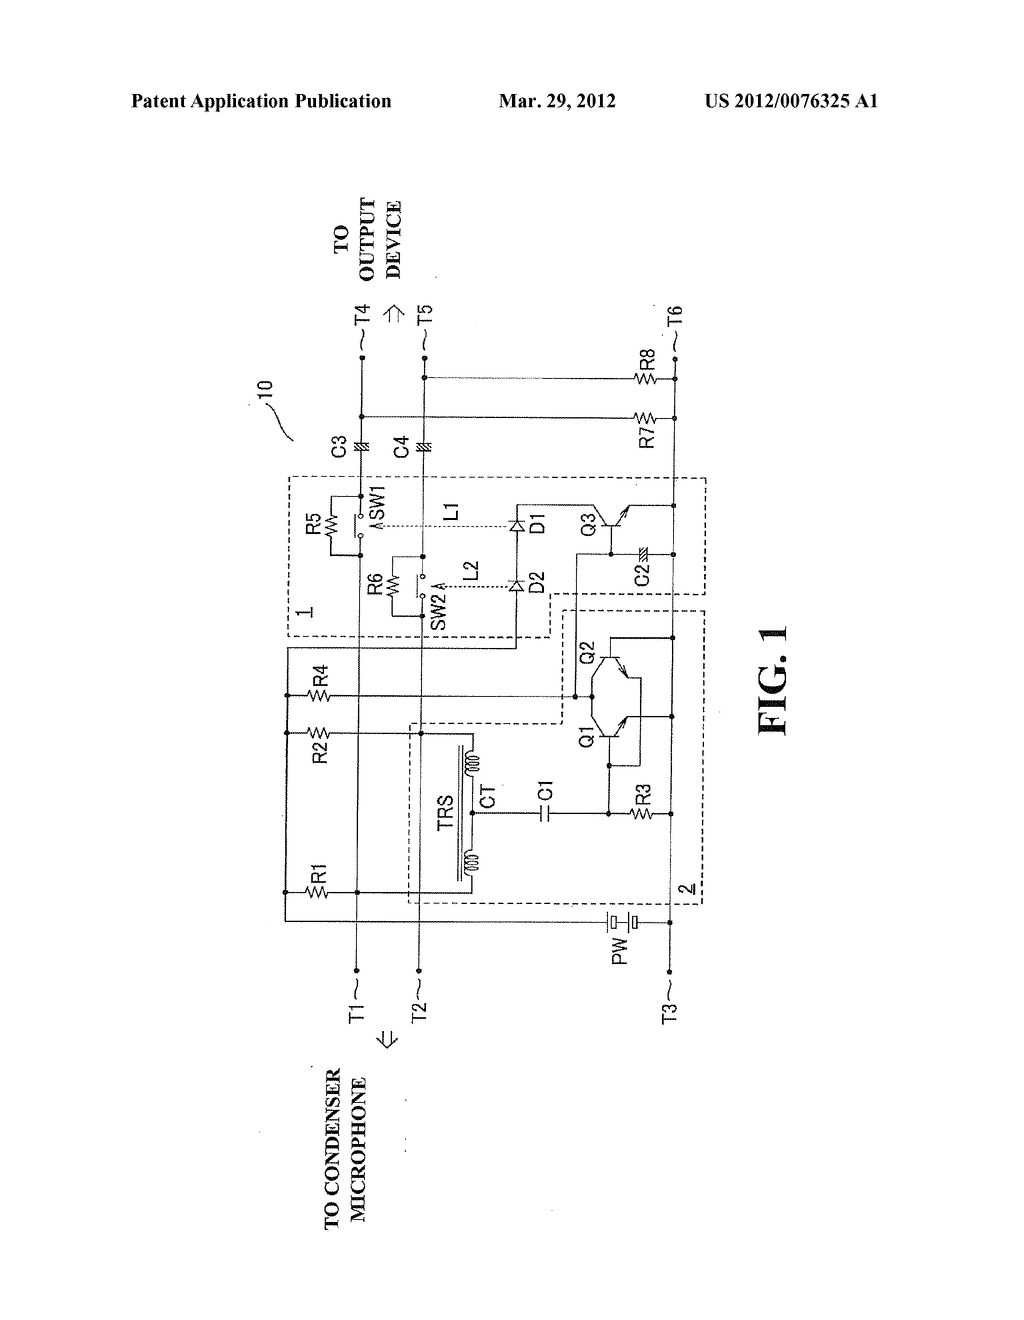 Phantom Power Circuit Diagram Schematic And Image 02 Electricity Diagrams